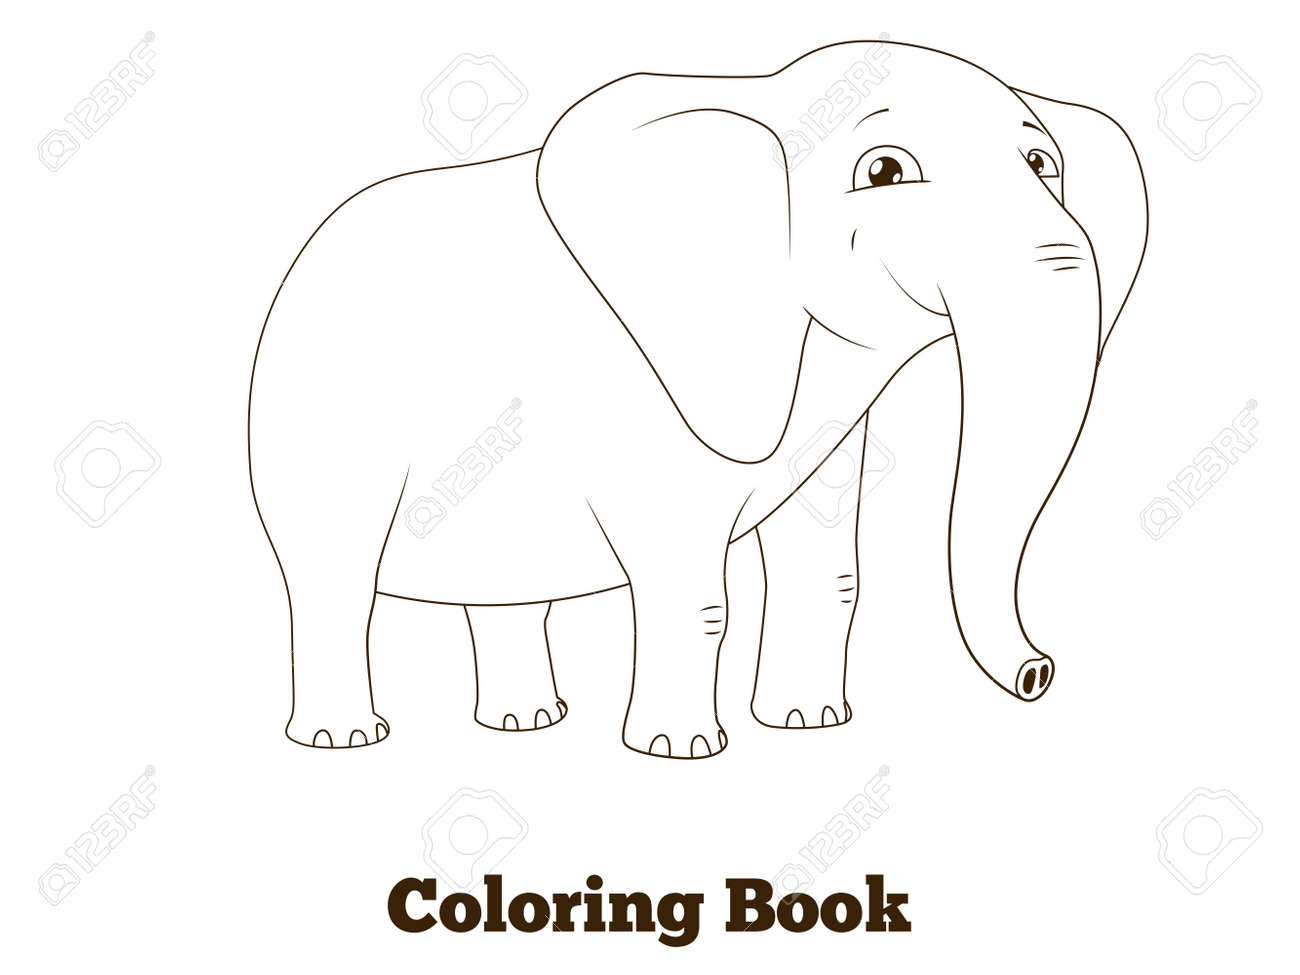 Coloring Book Elephant African Animal Cartoon Educational Vector Illustration Stock